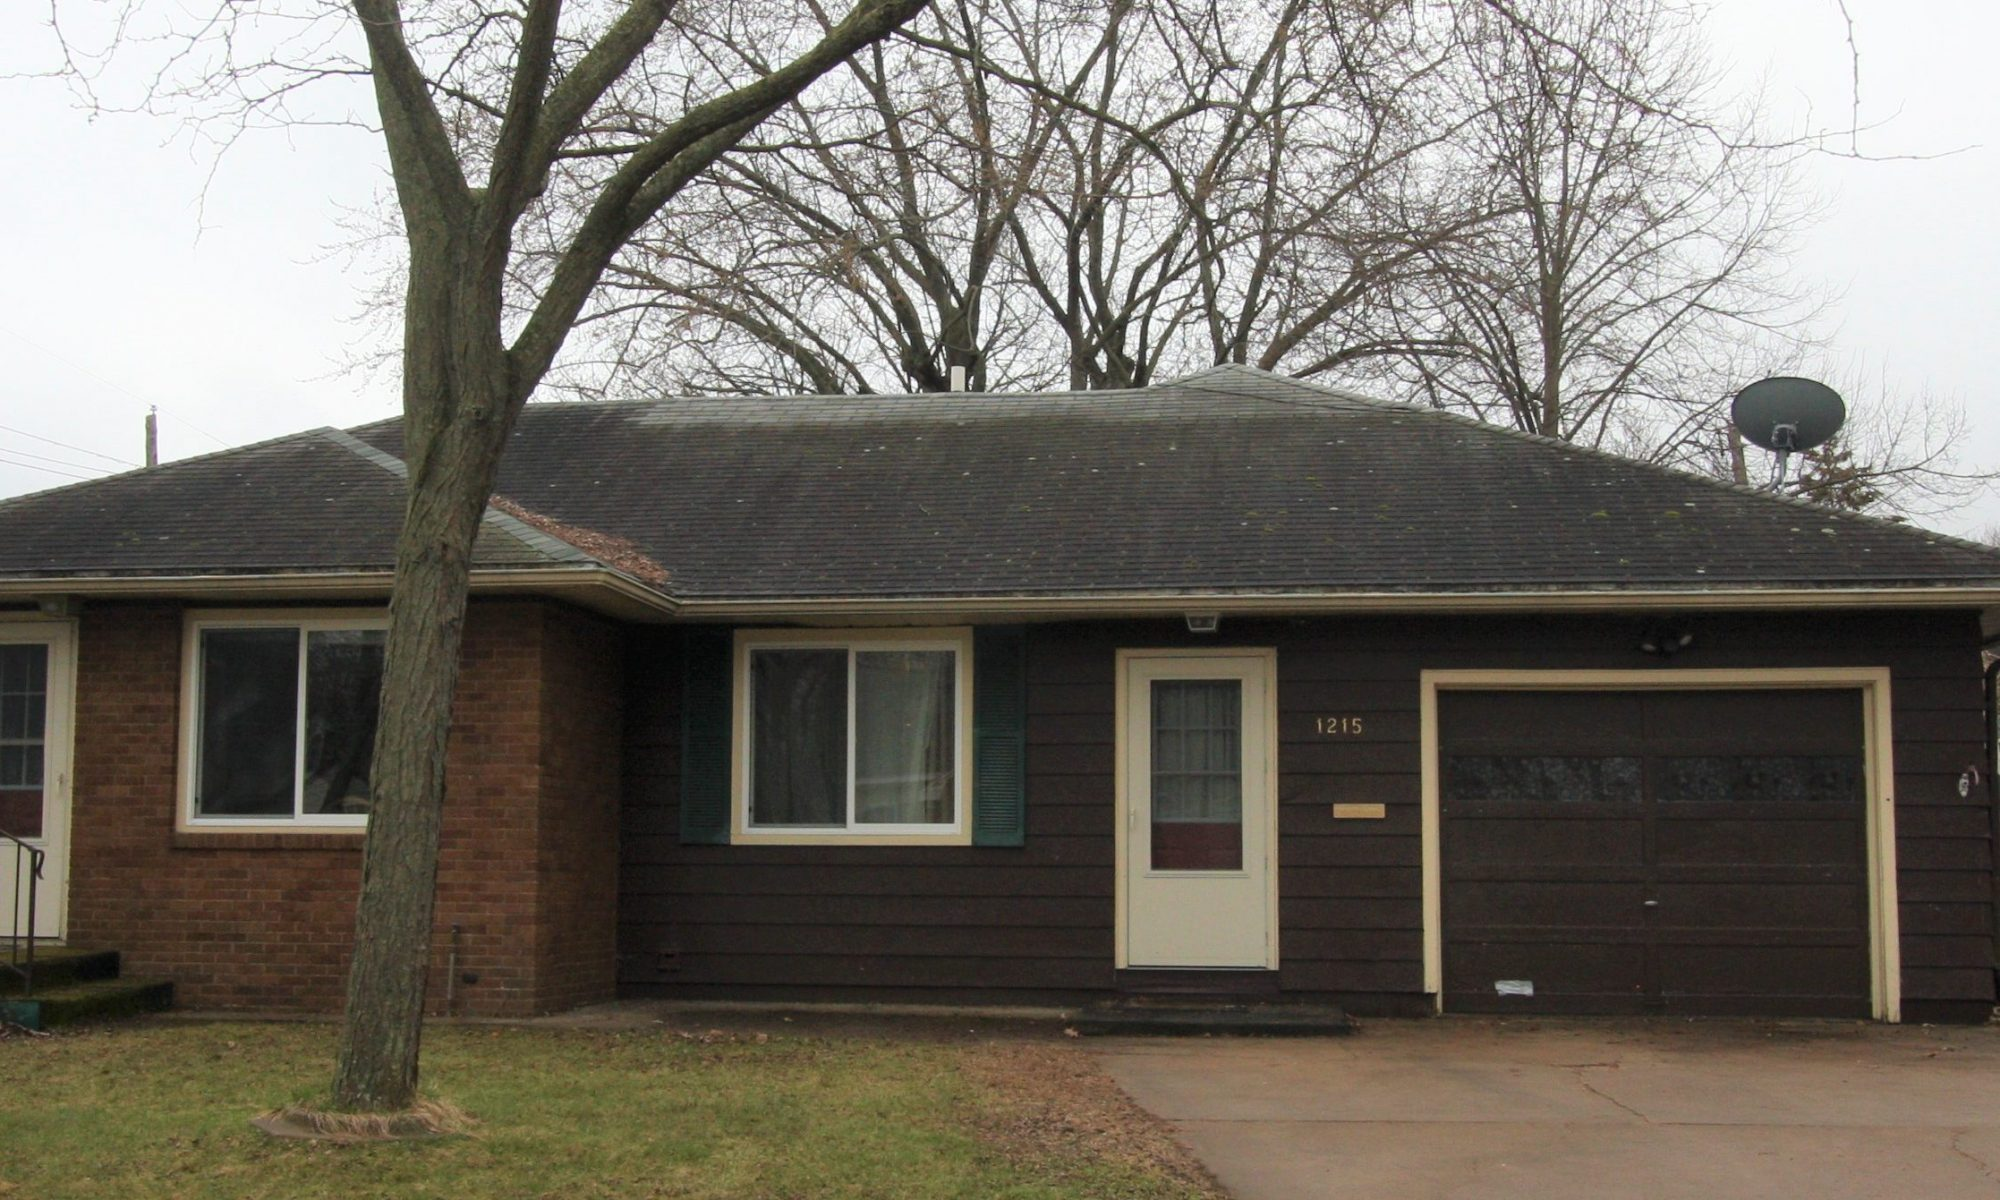 Blog Check Out This 3 Bedroom Ranch Home With A Really Great Layout Team Tiry